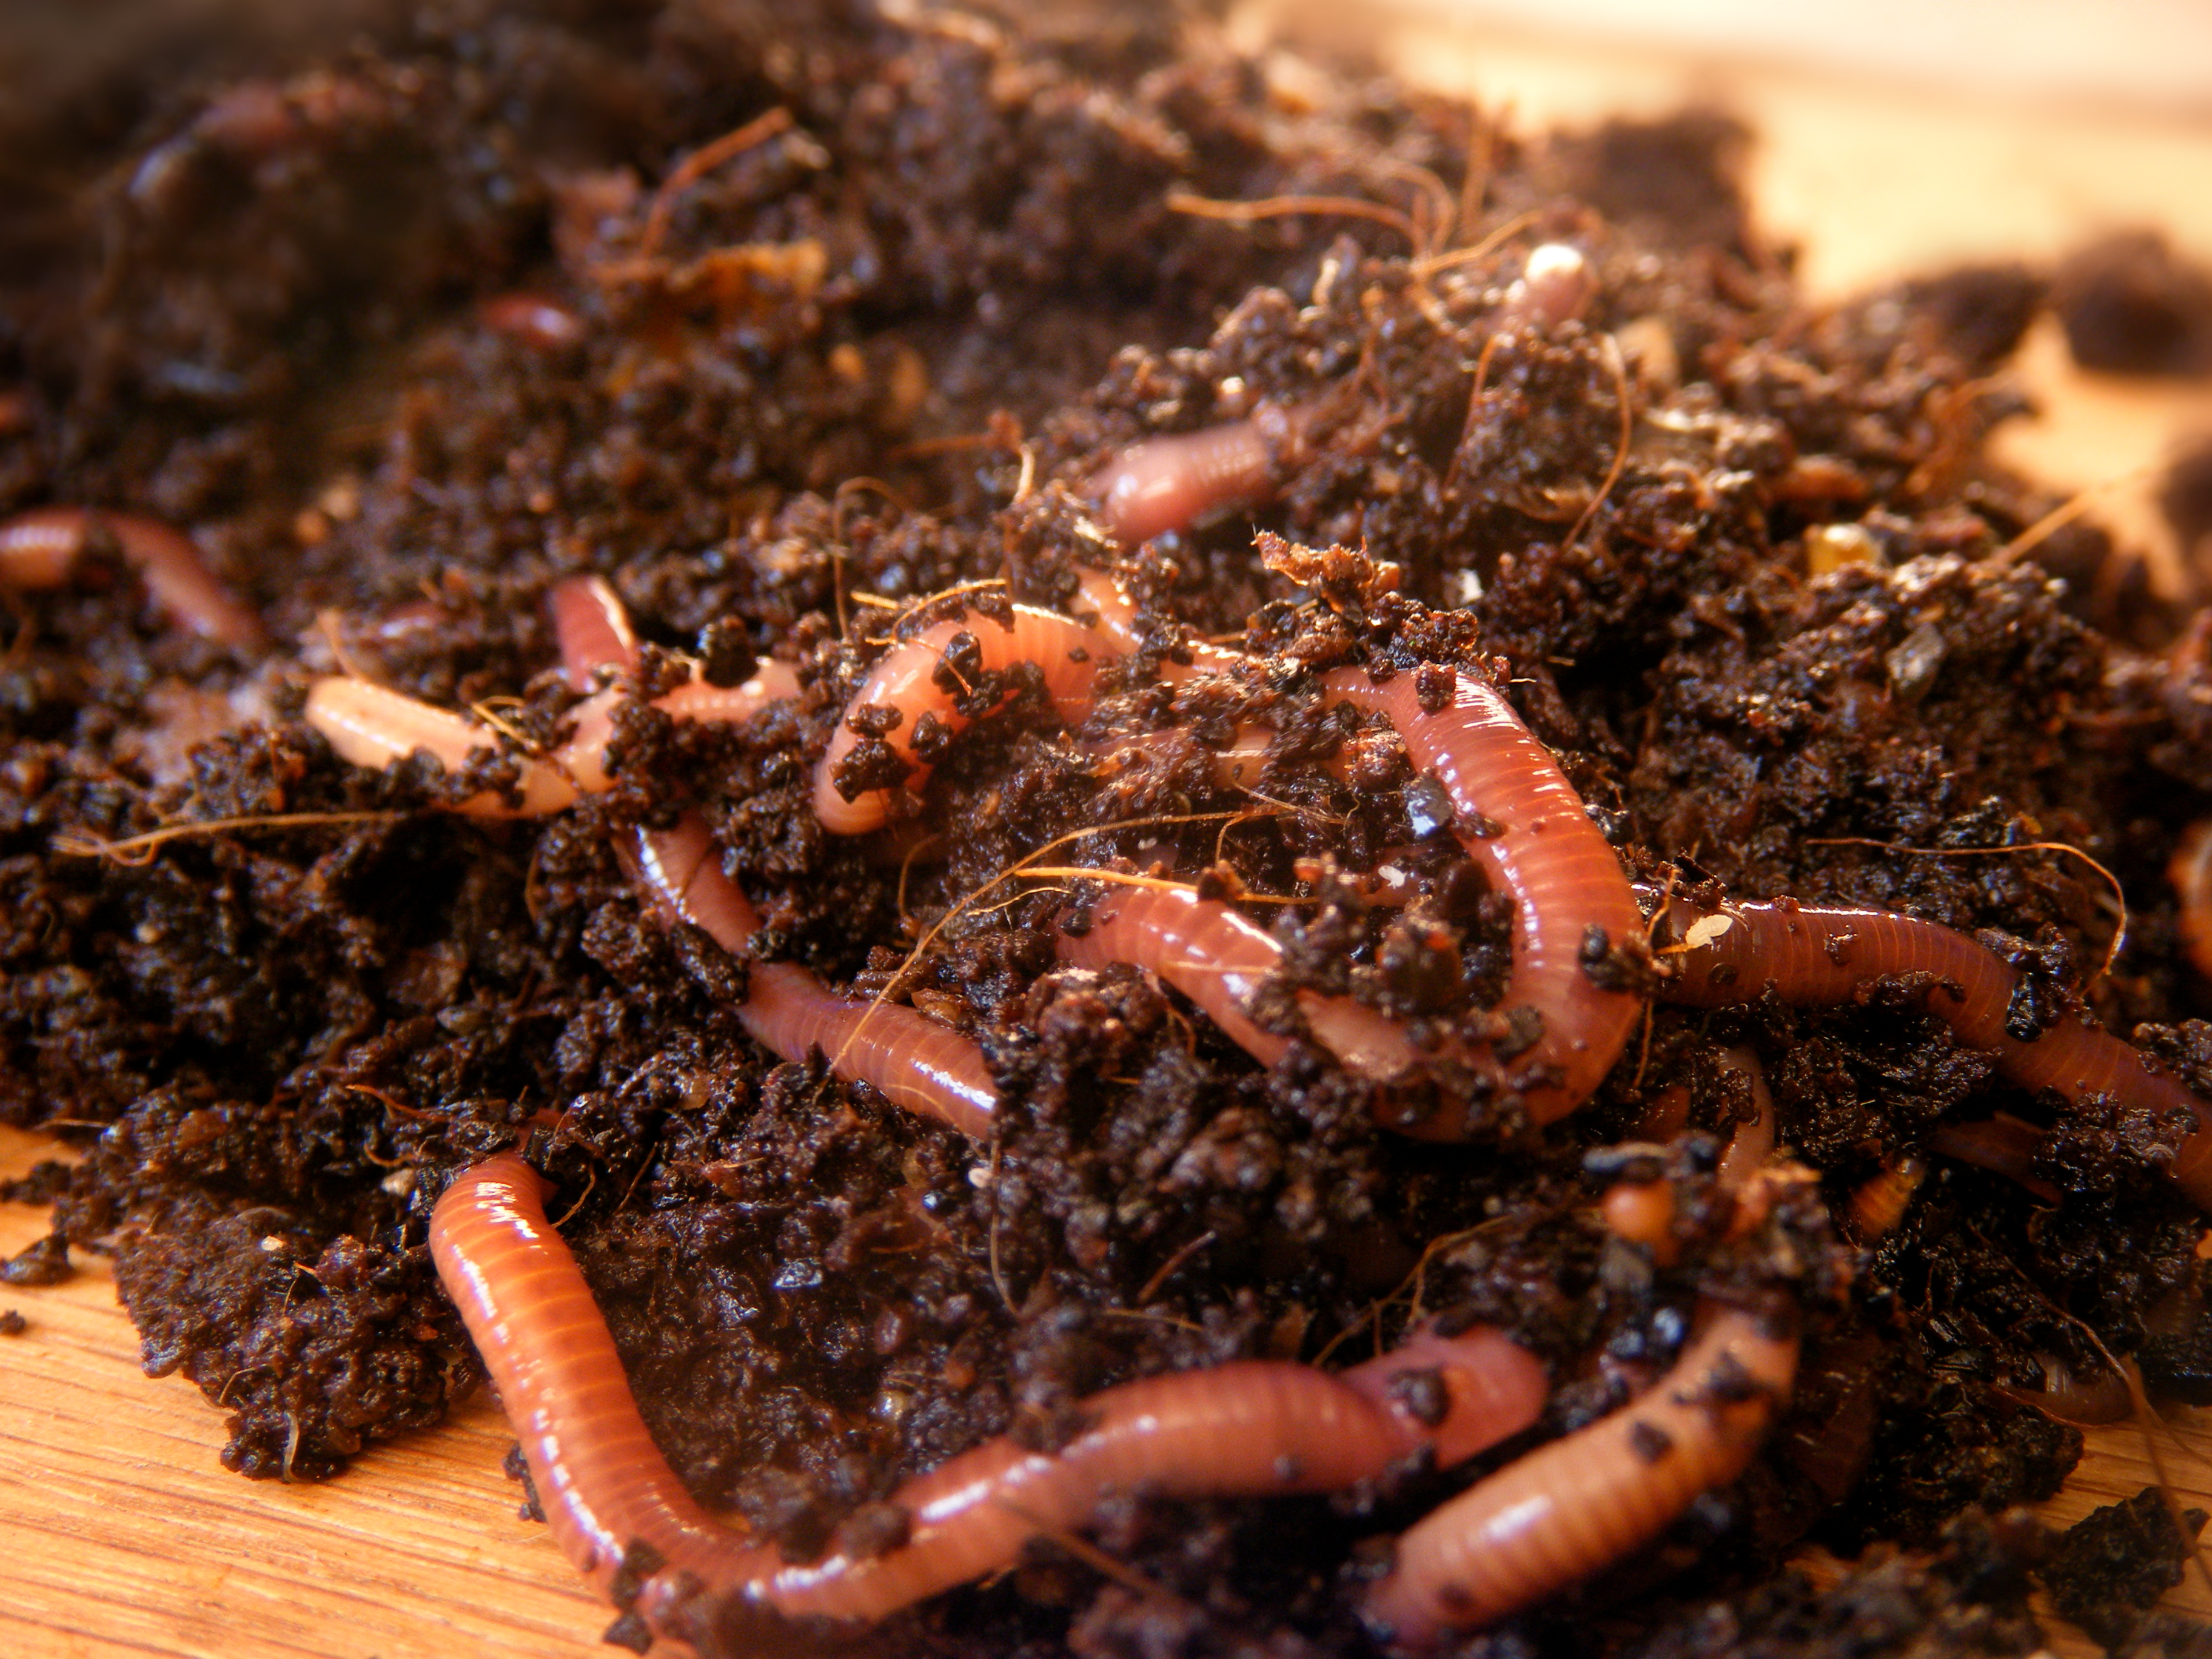 How to Raise Freshwater Prawns at Home | Career Trend